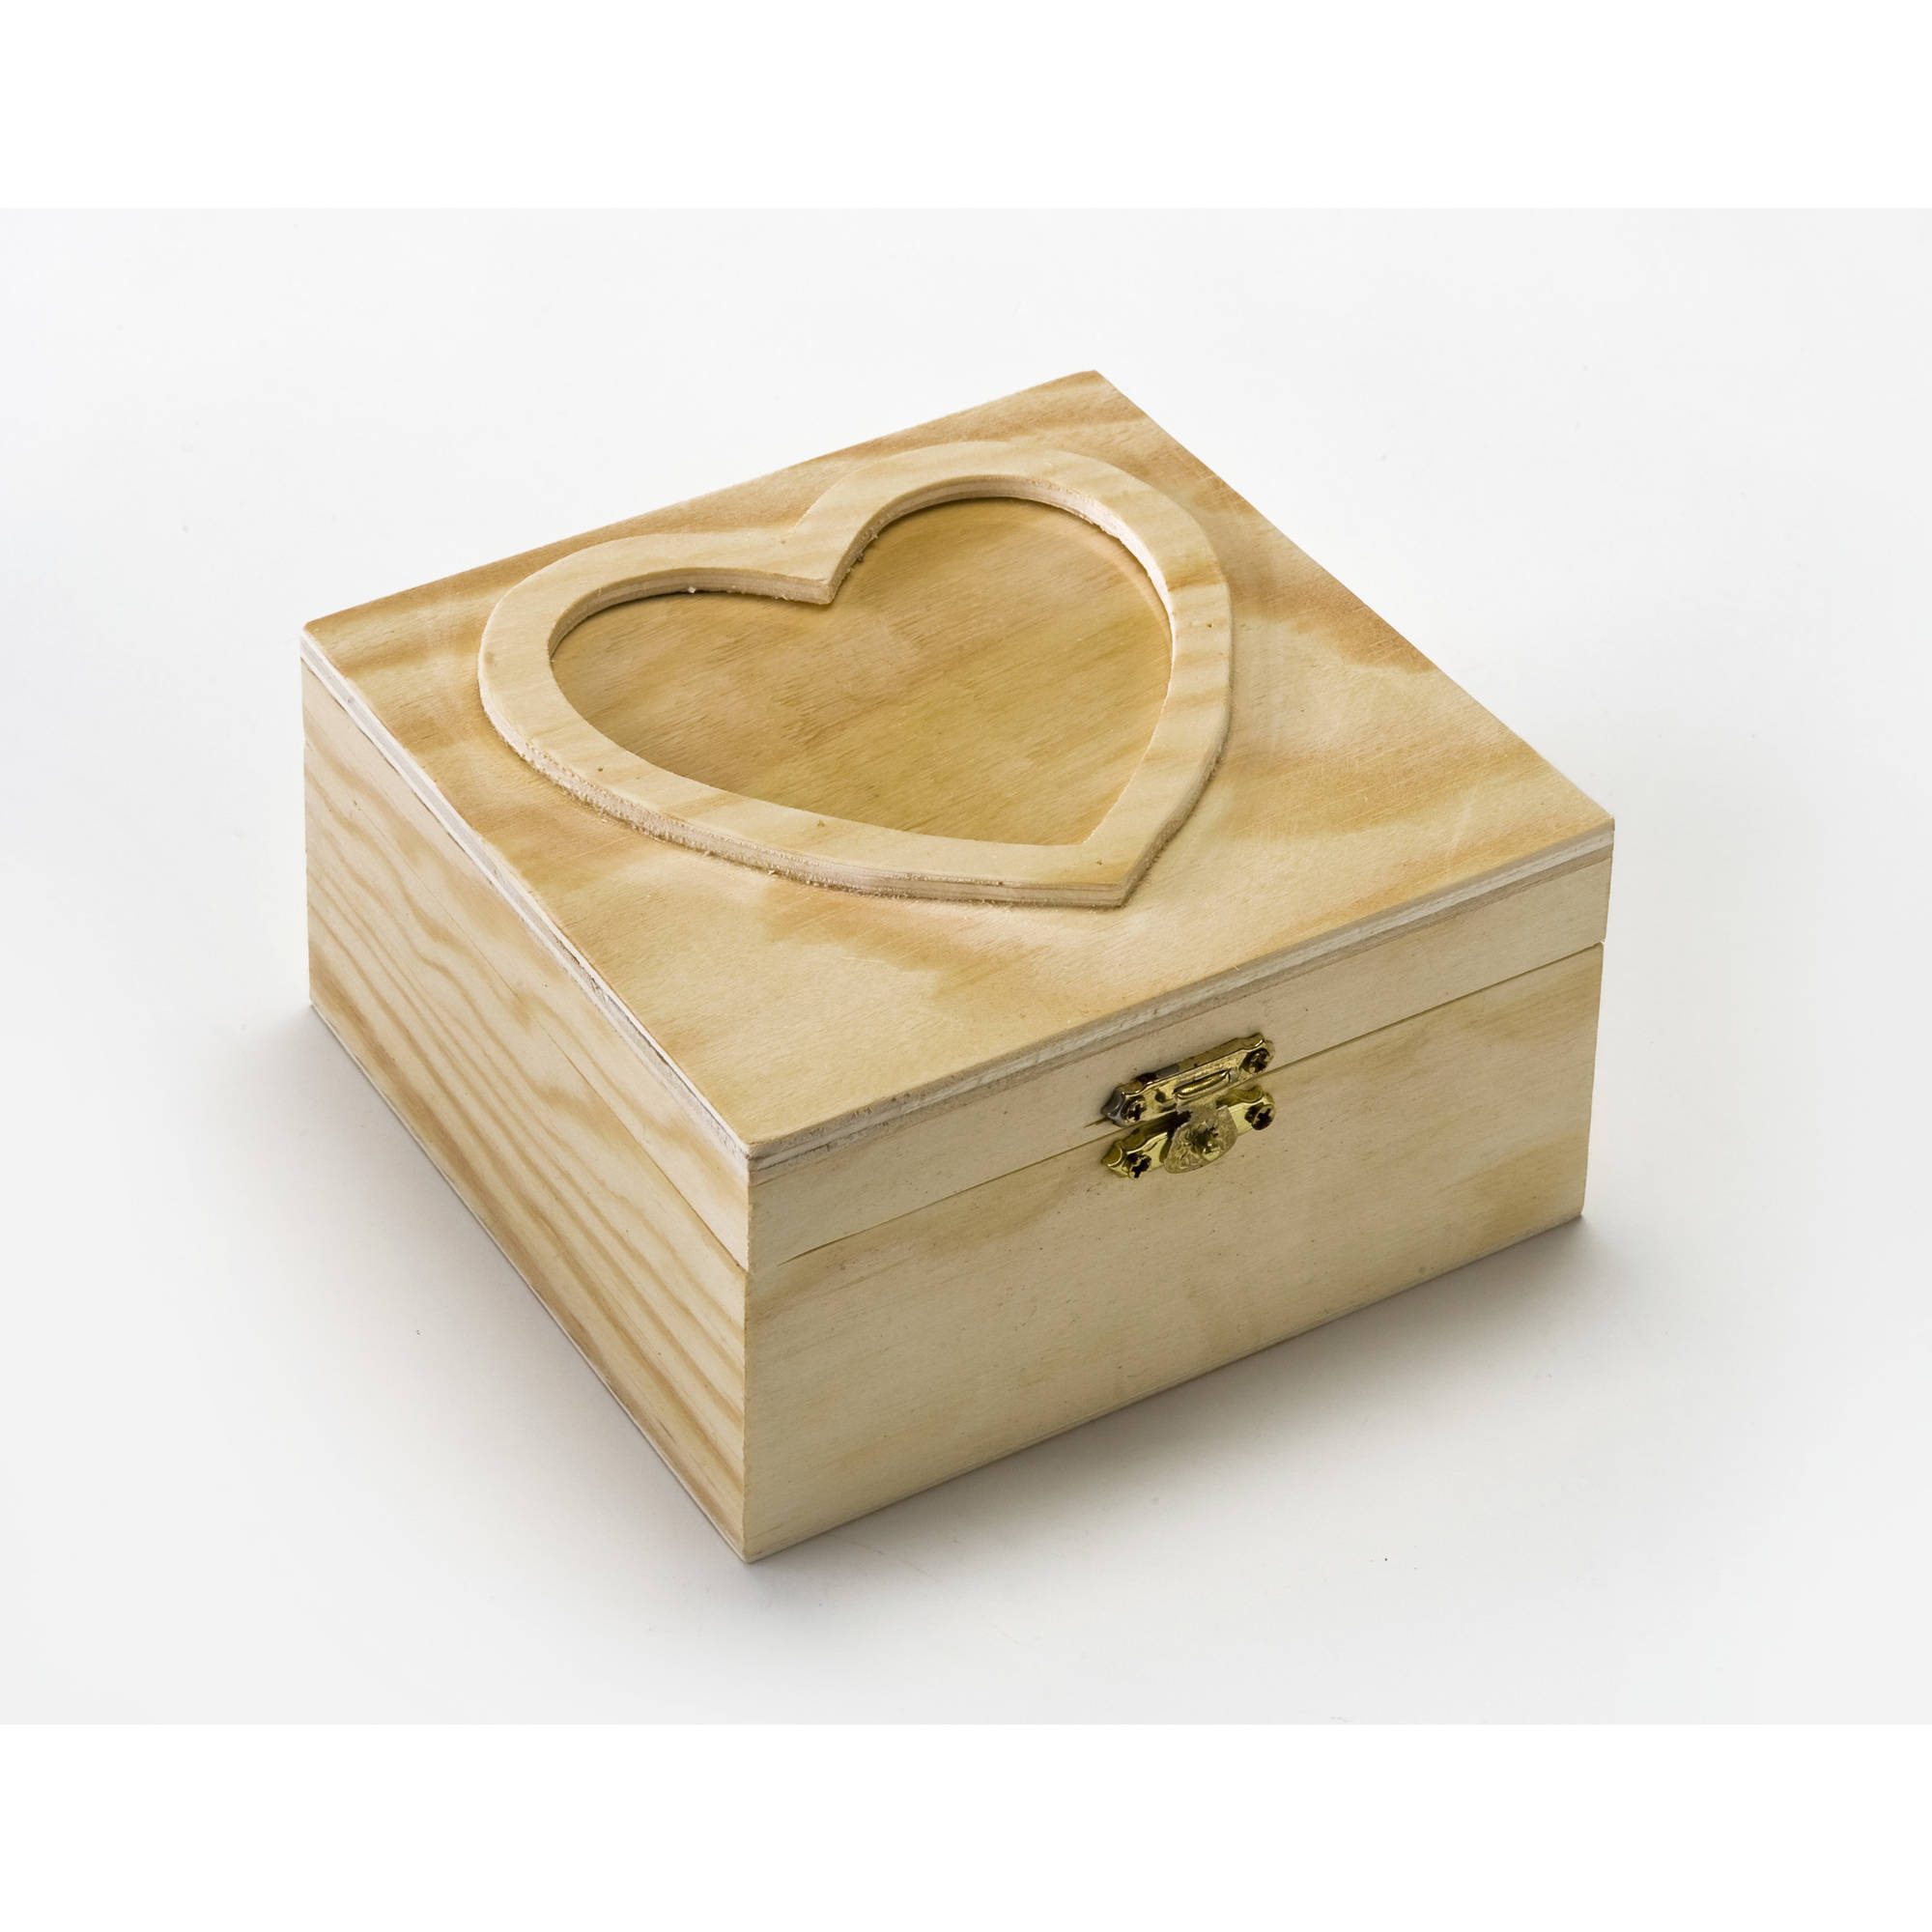 Plaid Hinged Box with Heart Lid